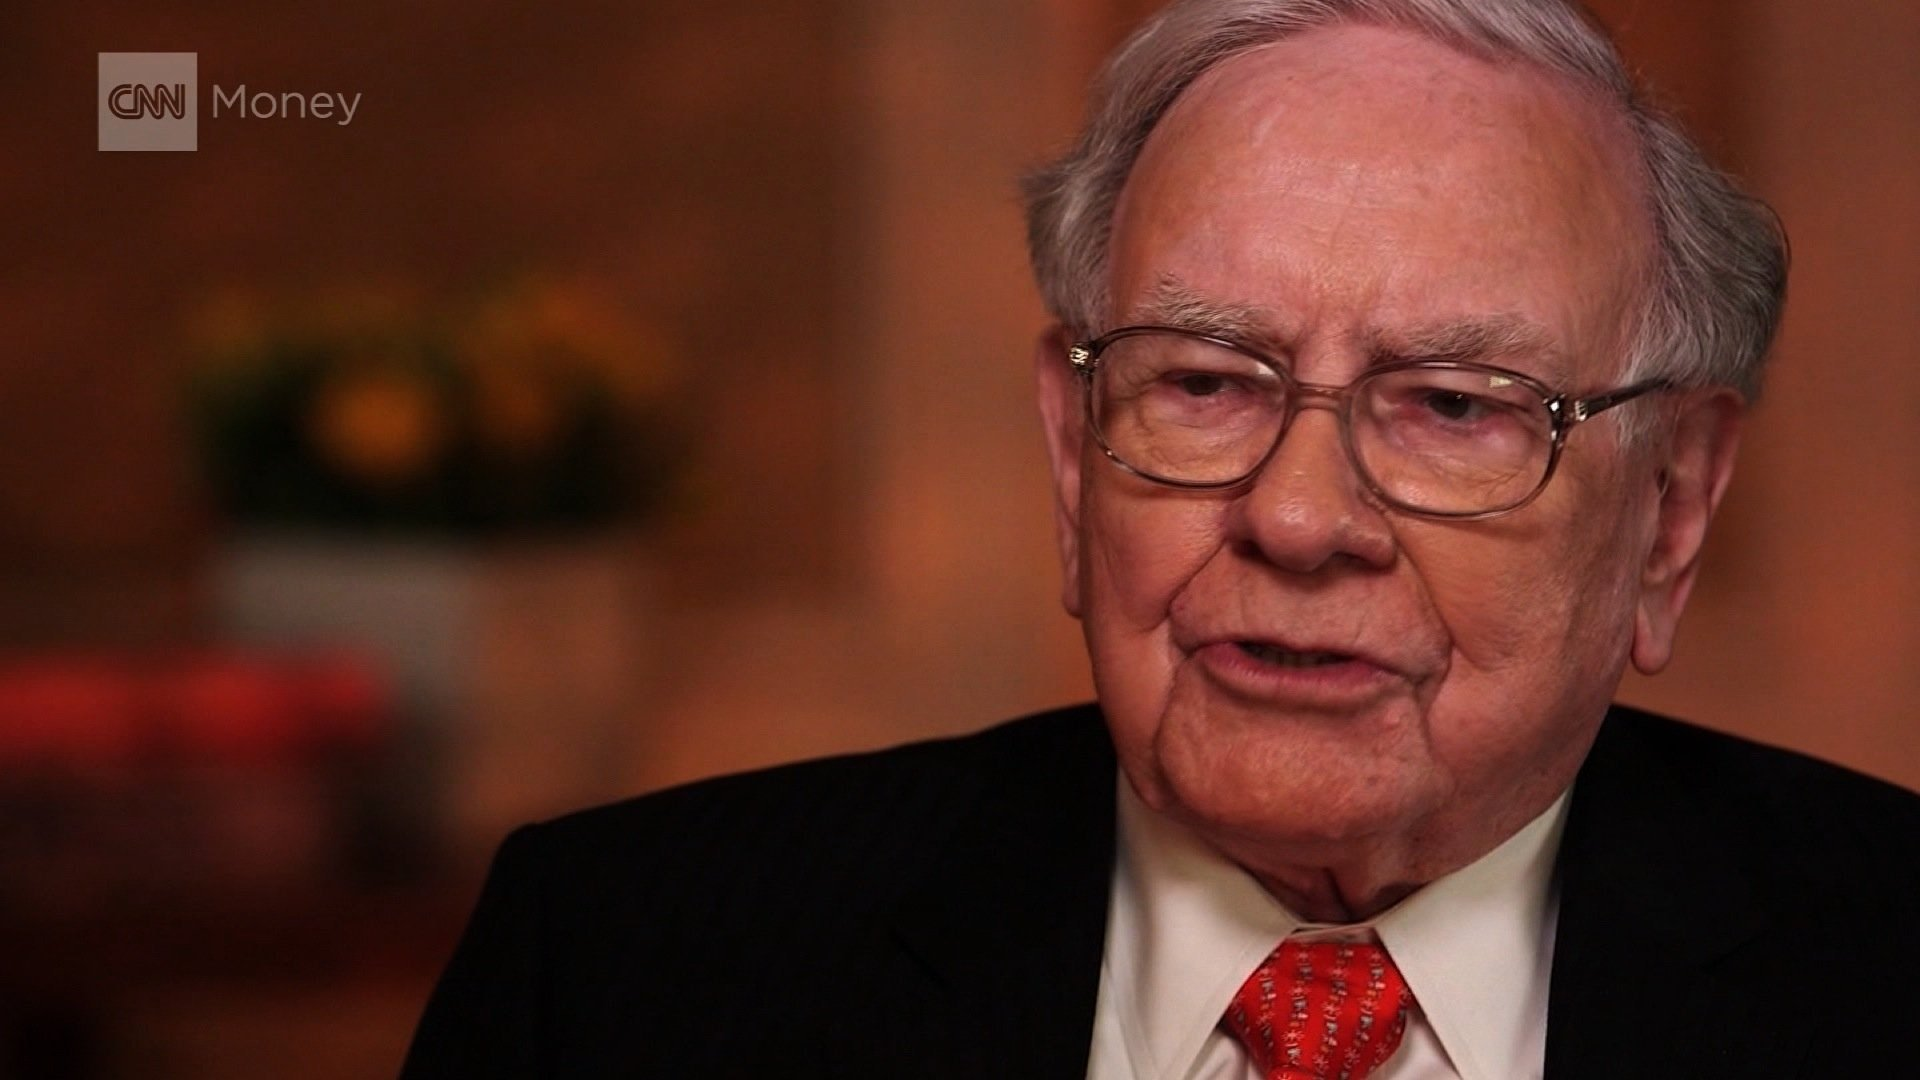 'We messed up by not investing in Amazon' says Buffett